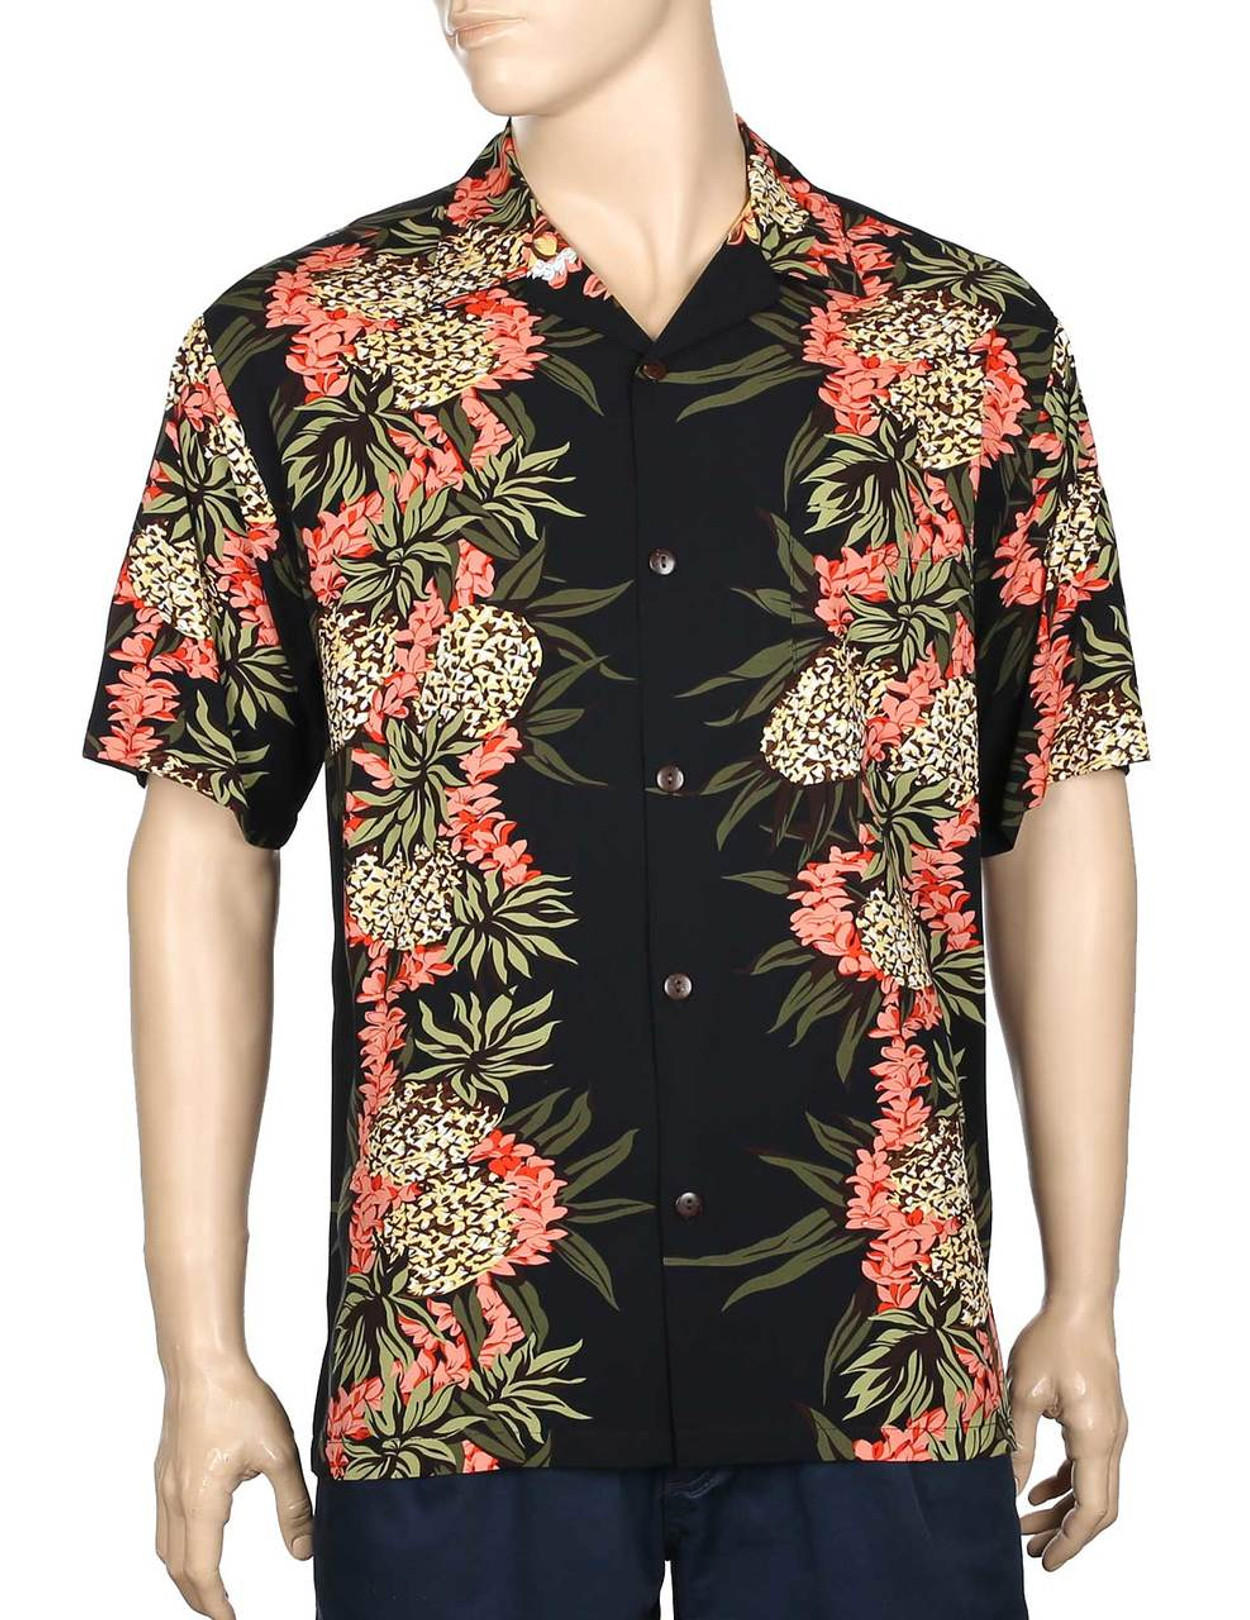 e18bfc46534 Pineapple Panel Hawaiian Shirt 100% Rayon Fabric - Soft and Classy Open  Collar - Relaxed